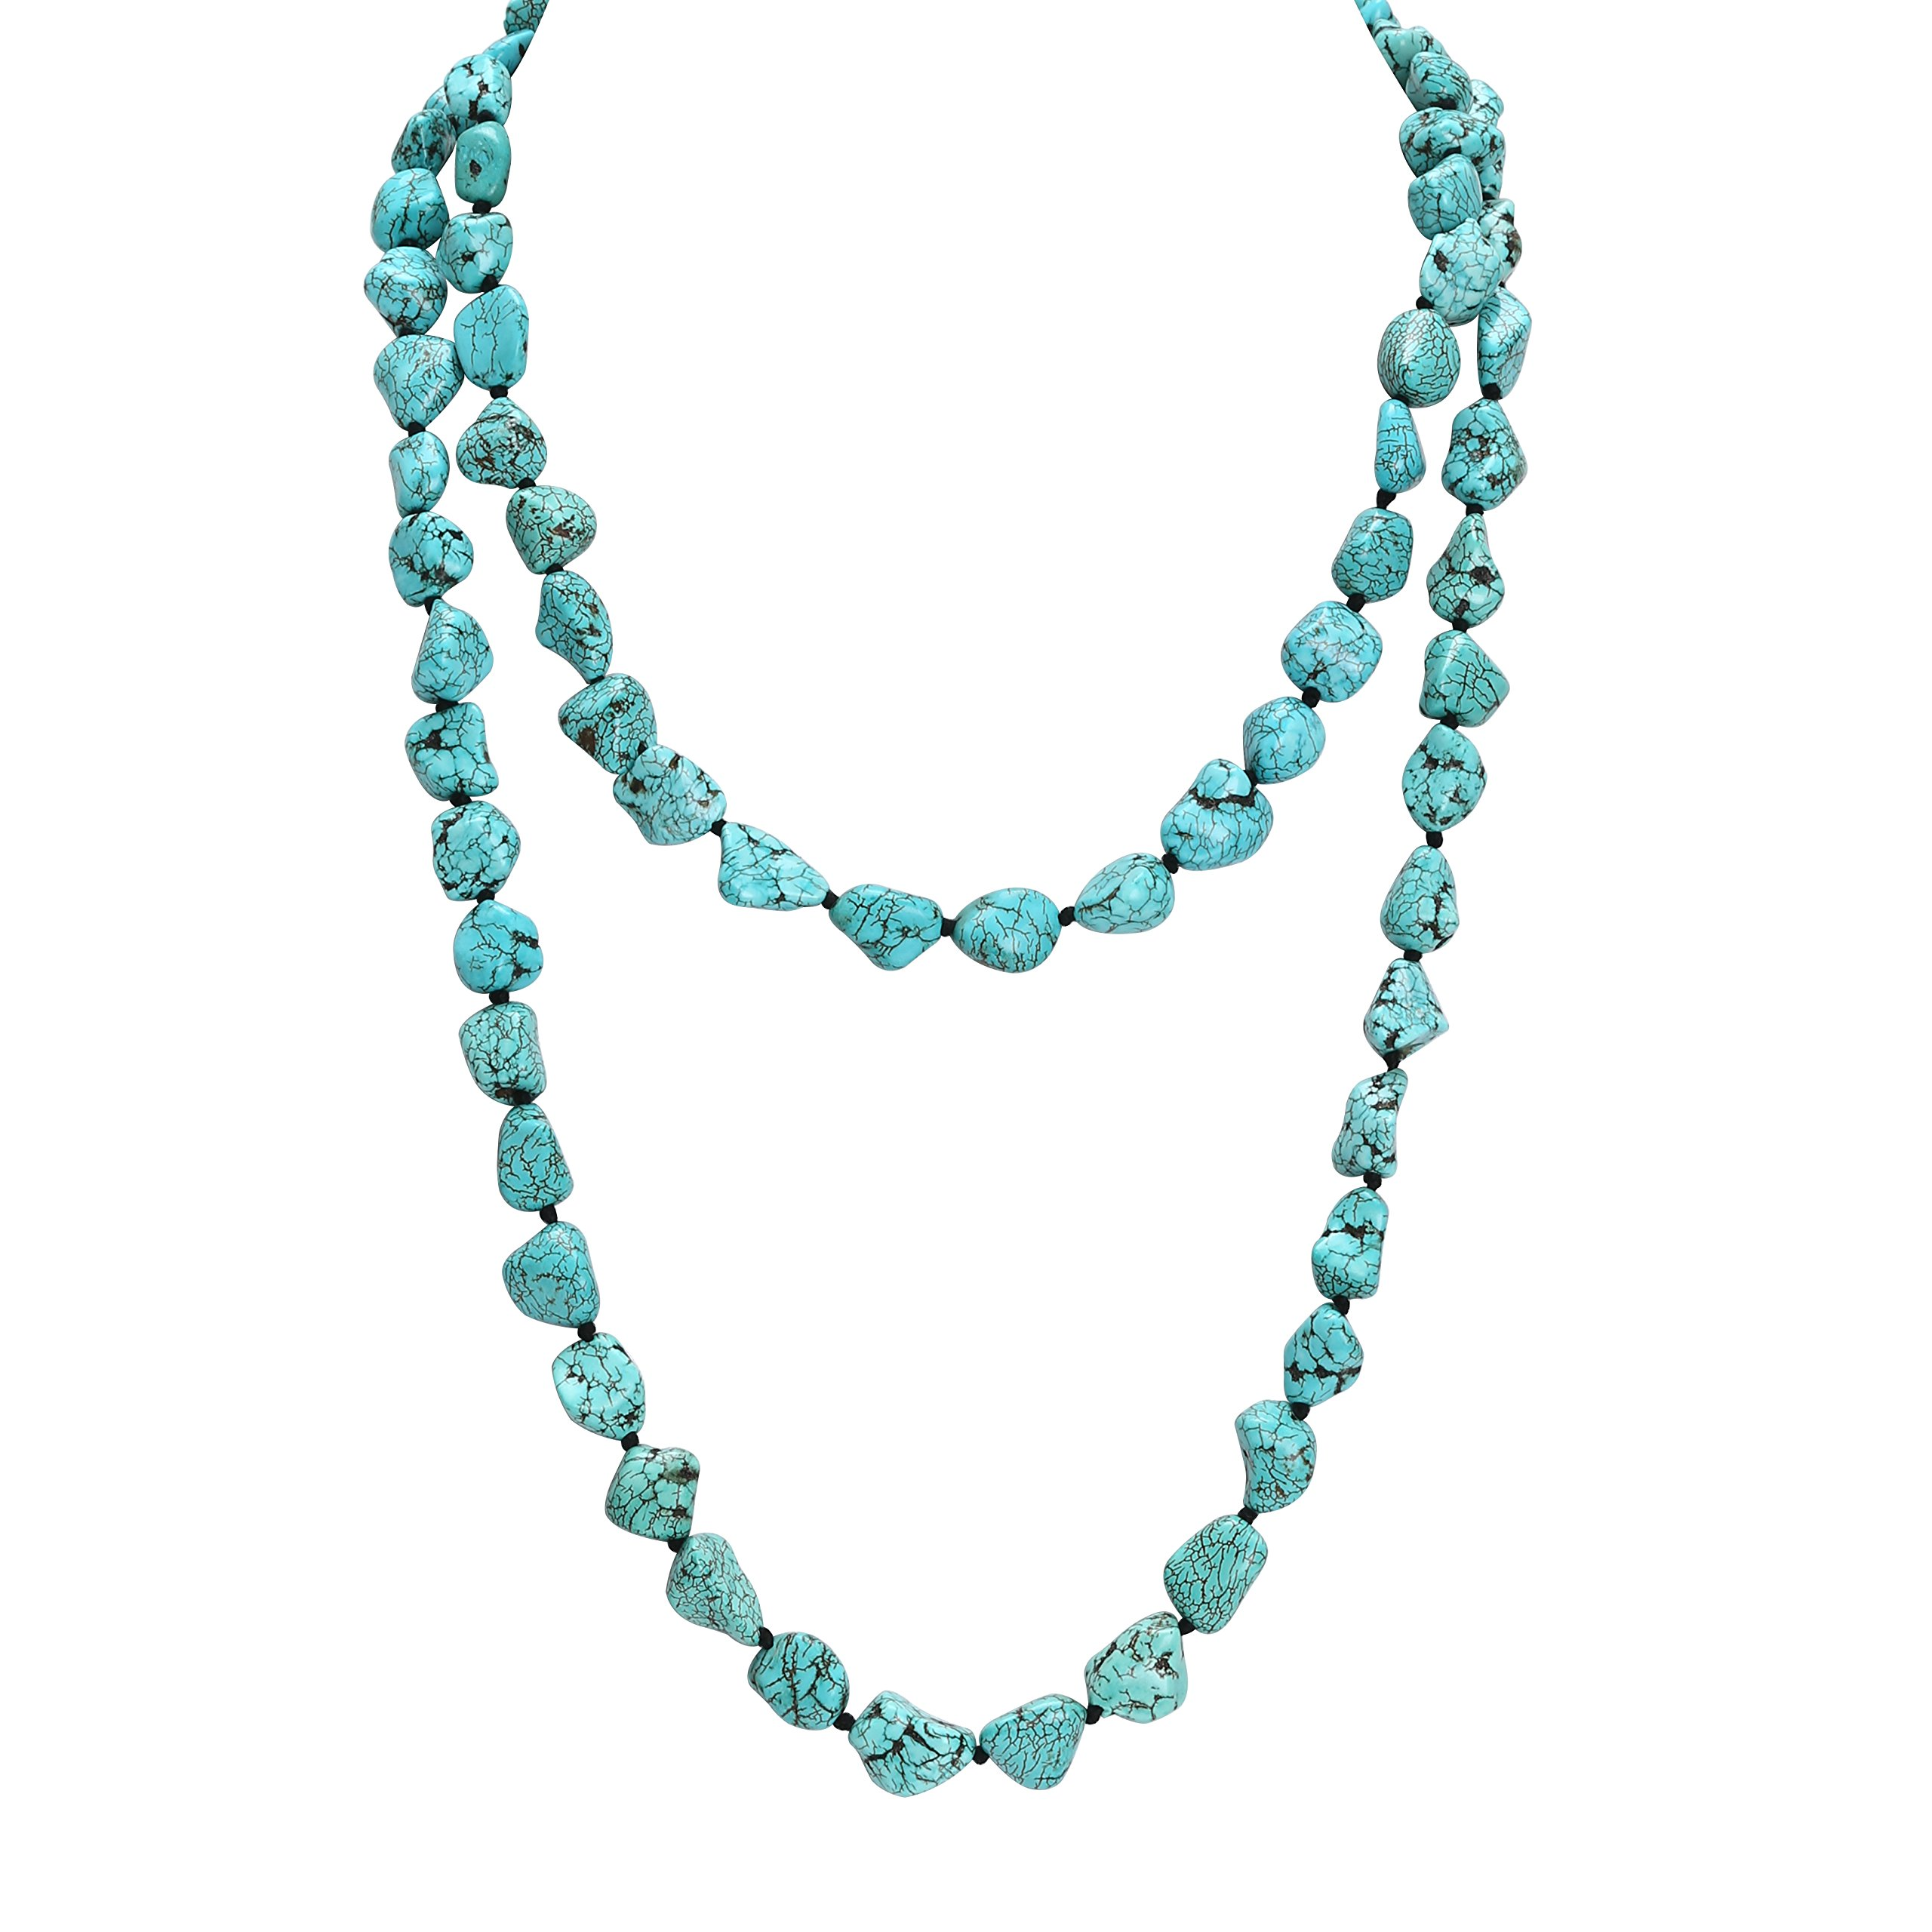 POTESSA Turquoise Beads Endless Necklace Long Knotted Stone Multi-Strand Layer Necklaces Handmade Jewelry 47'' by POTESSA